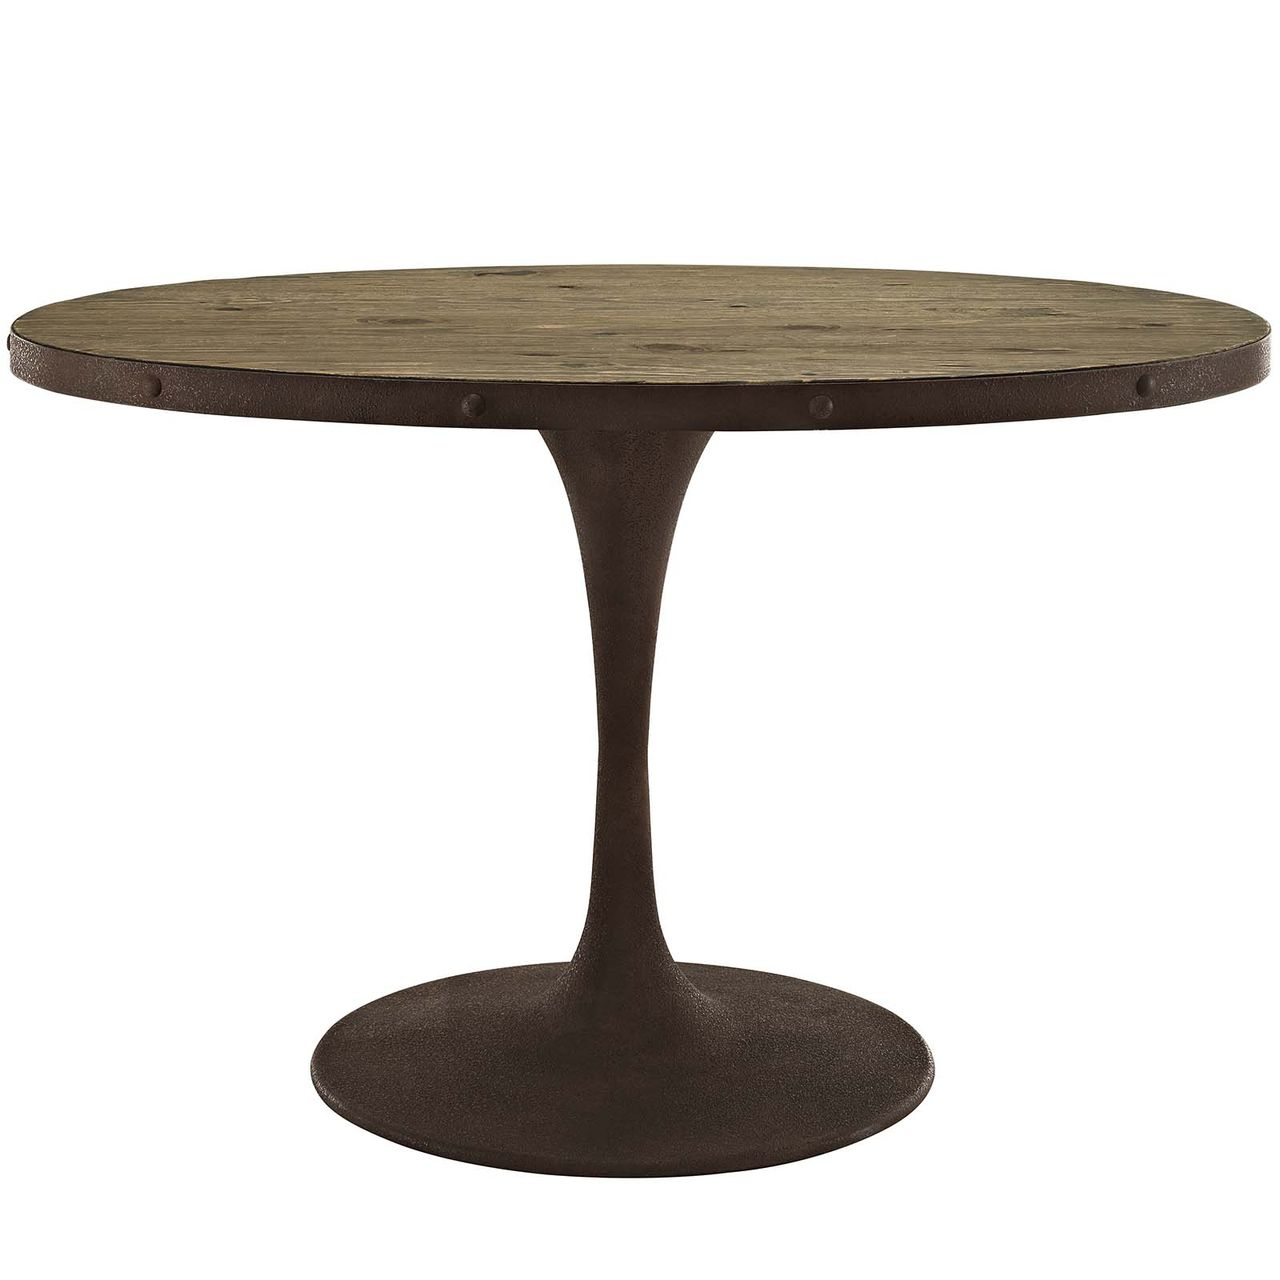 """Modway Drive 47"""" Oval Wood Top Dining Table - Brown"""